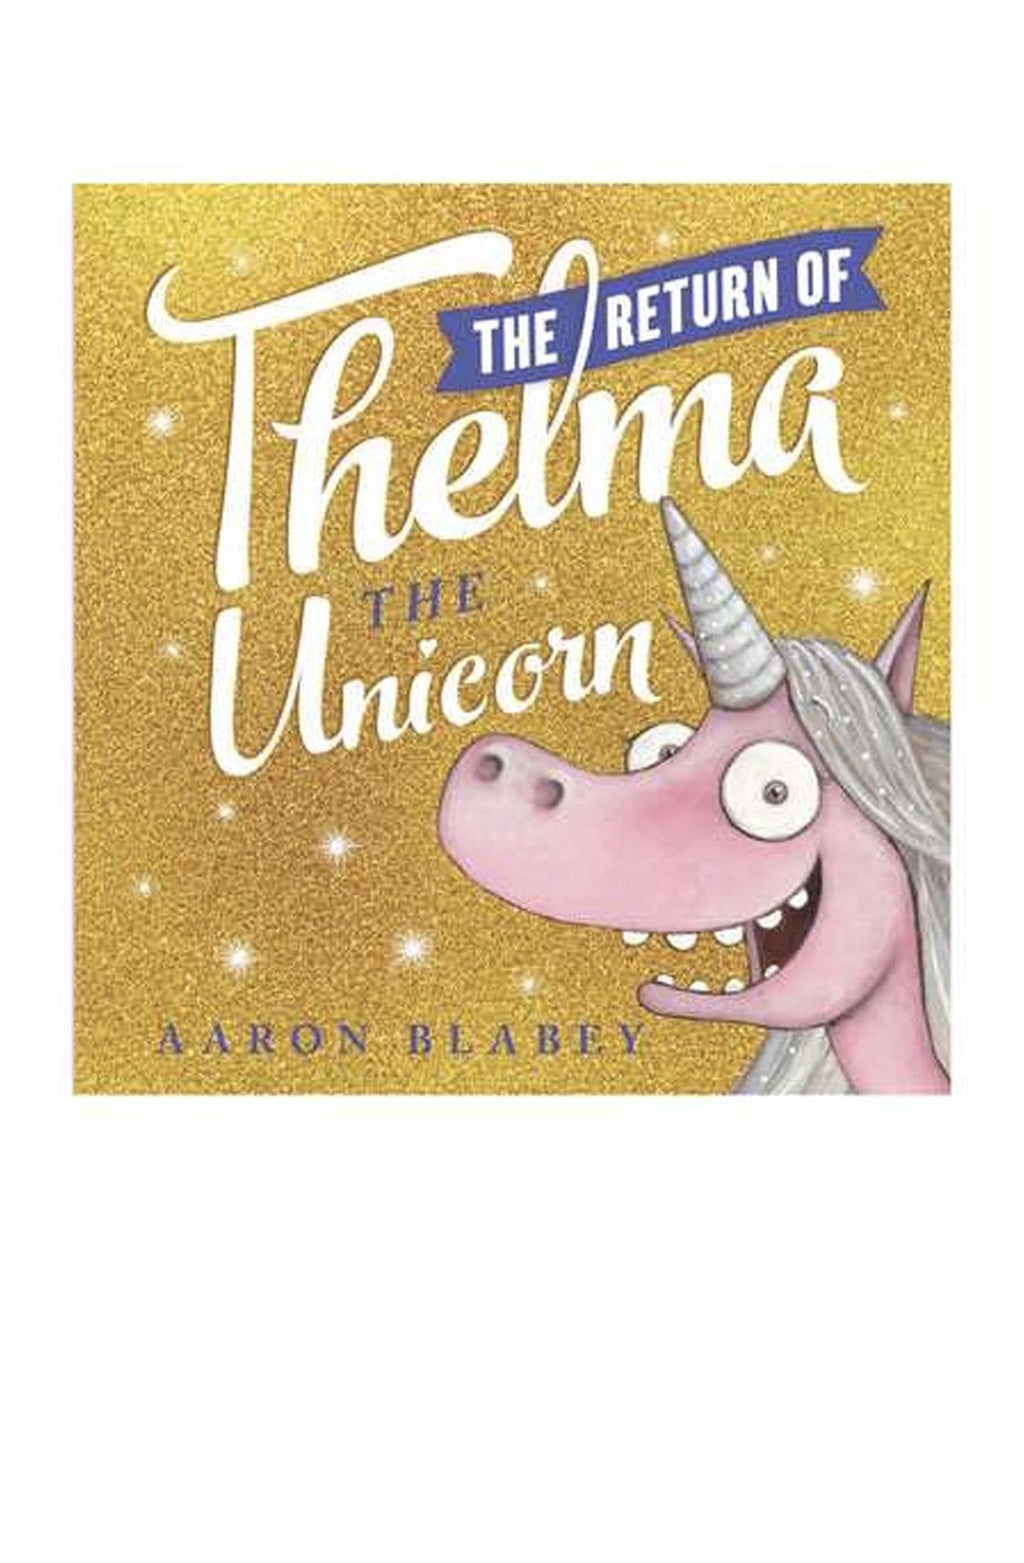 The Return of Thelma the Unicorn - Hello Little Birdie